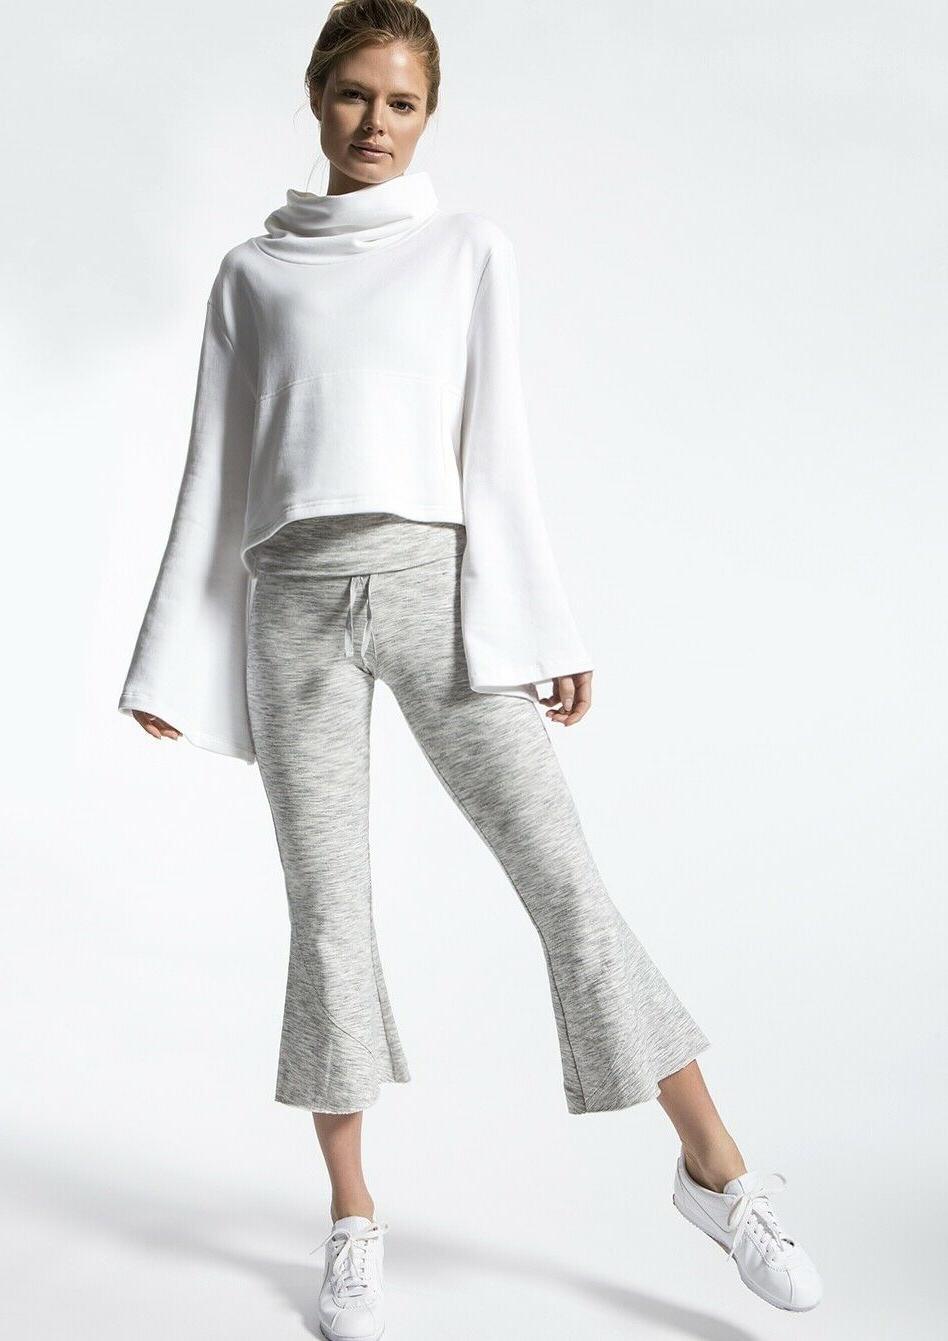 NWT Free People Movement Pant M